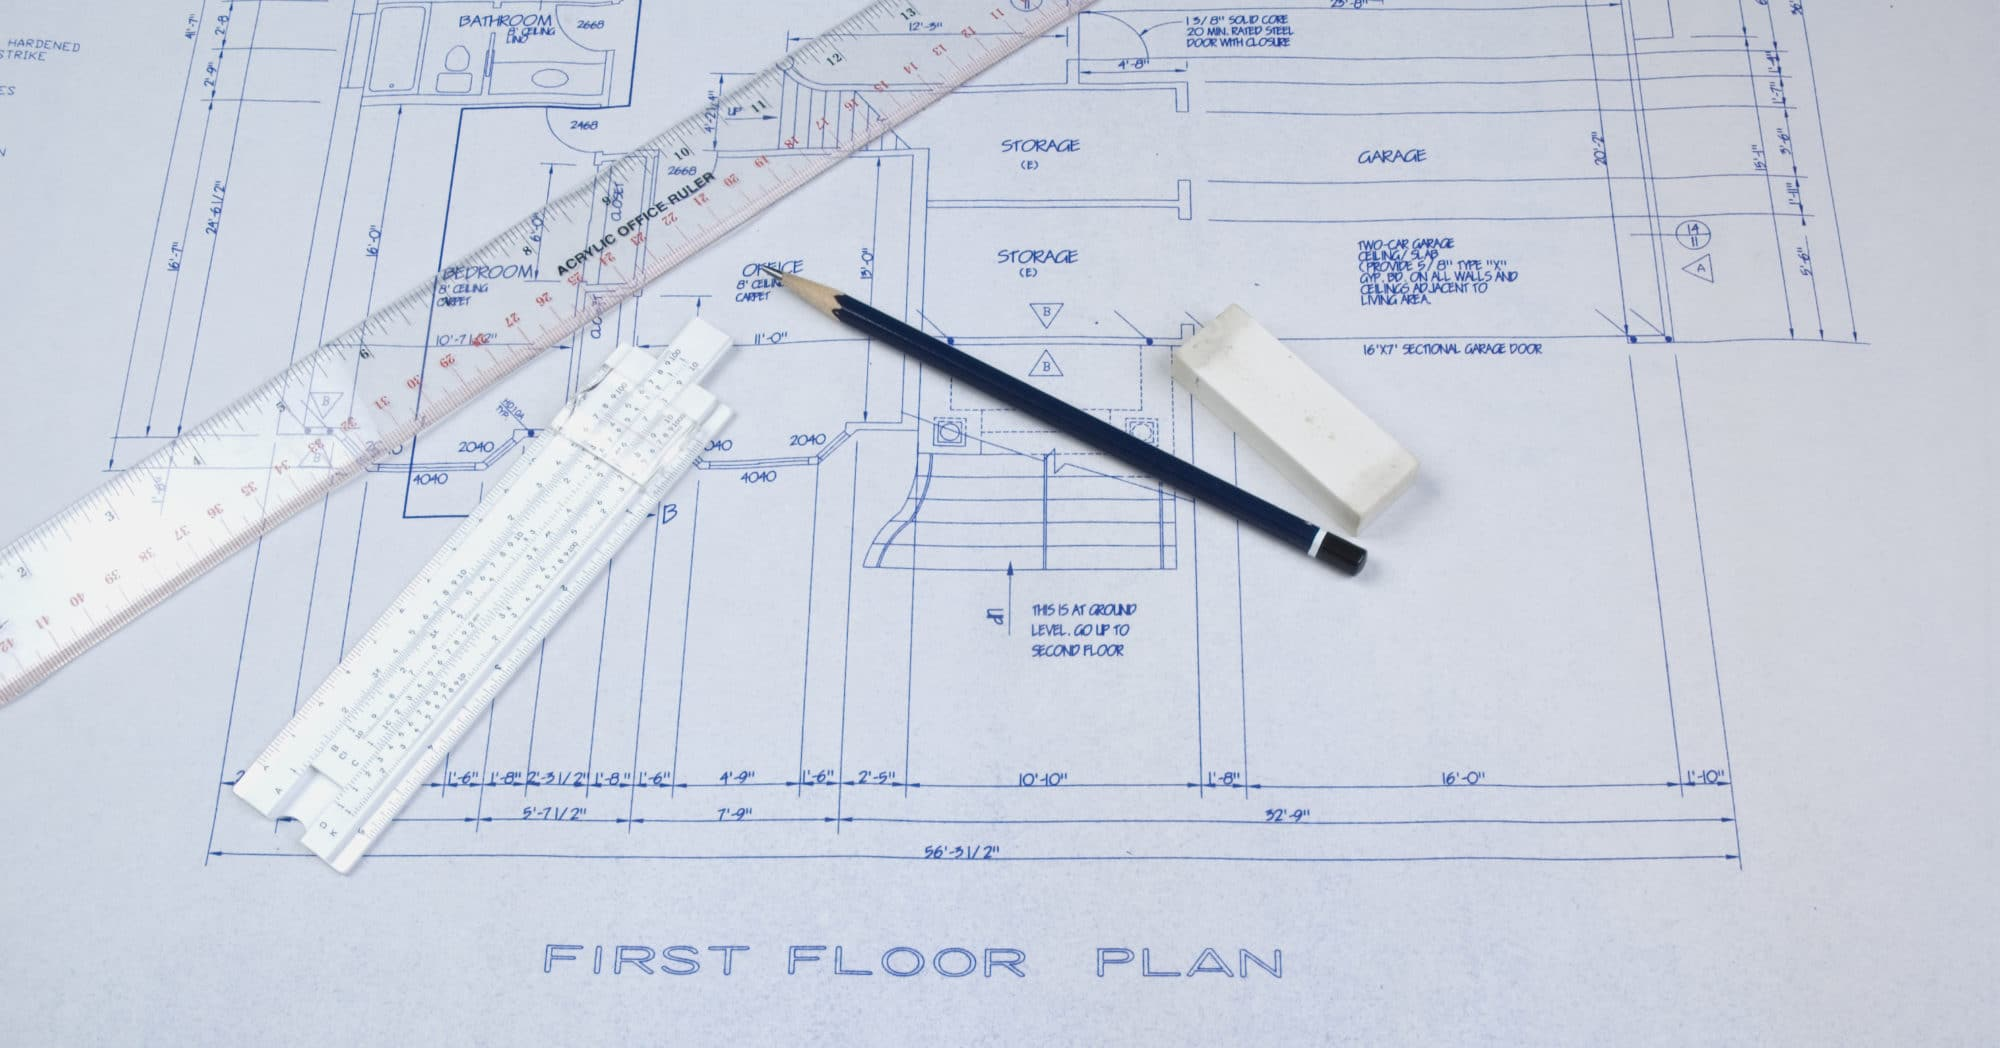 Sierra Remodeling offers 7 custom home floor plans to choose from or bring your own!